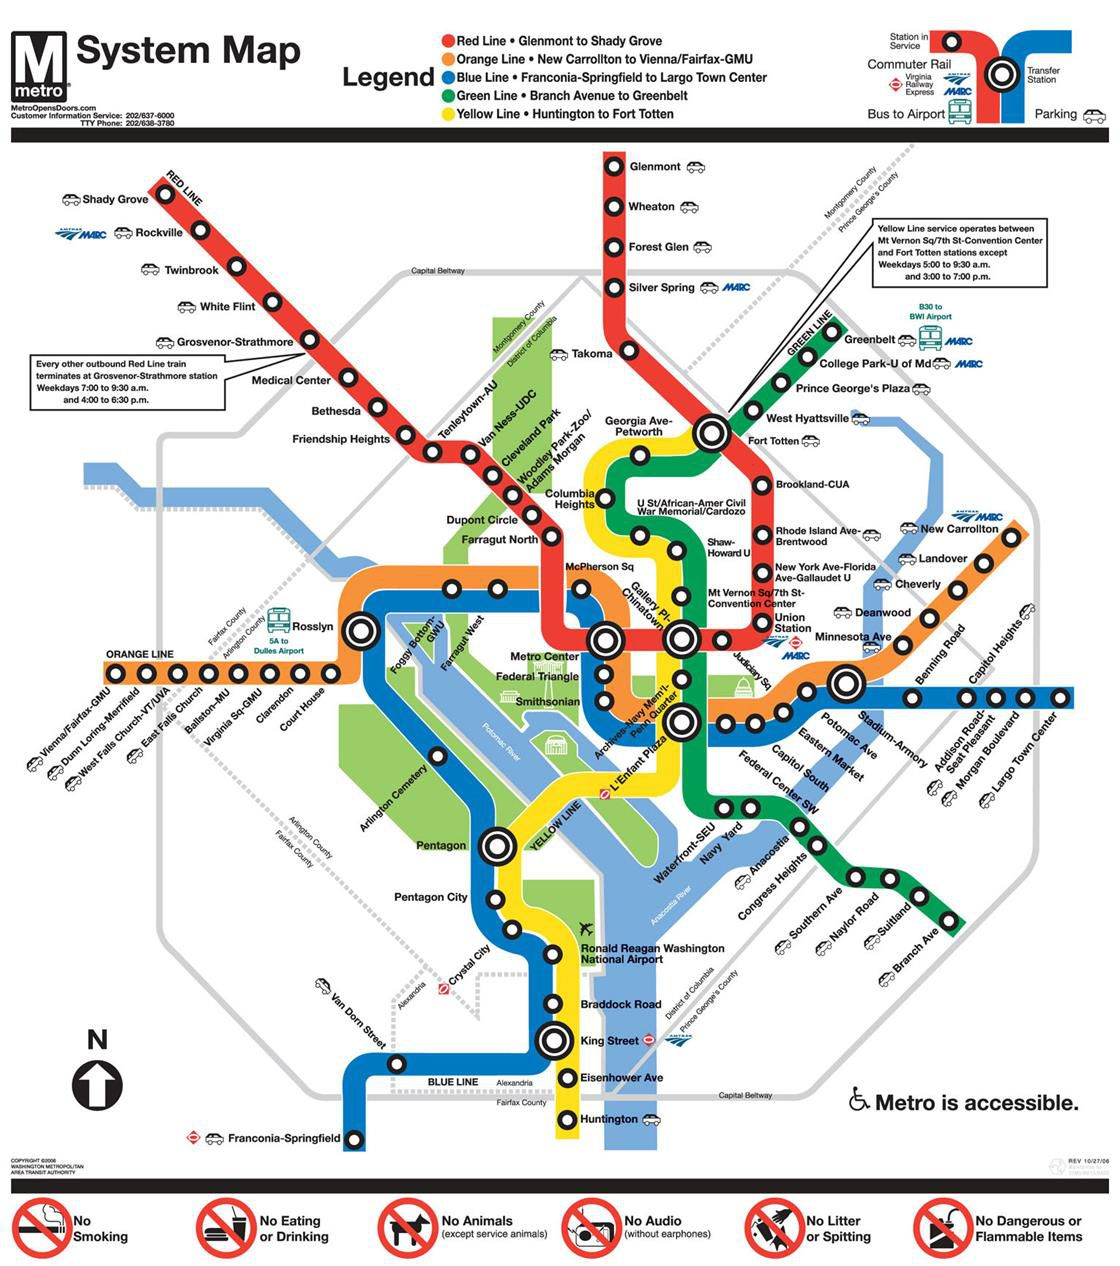 Dc Metro Red Line Map How to Make Metro Great Again   Vox Dc Metro Red Line Map